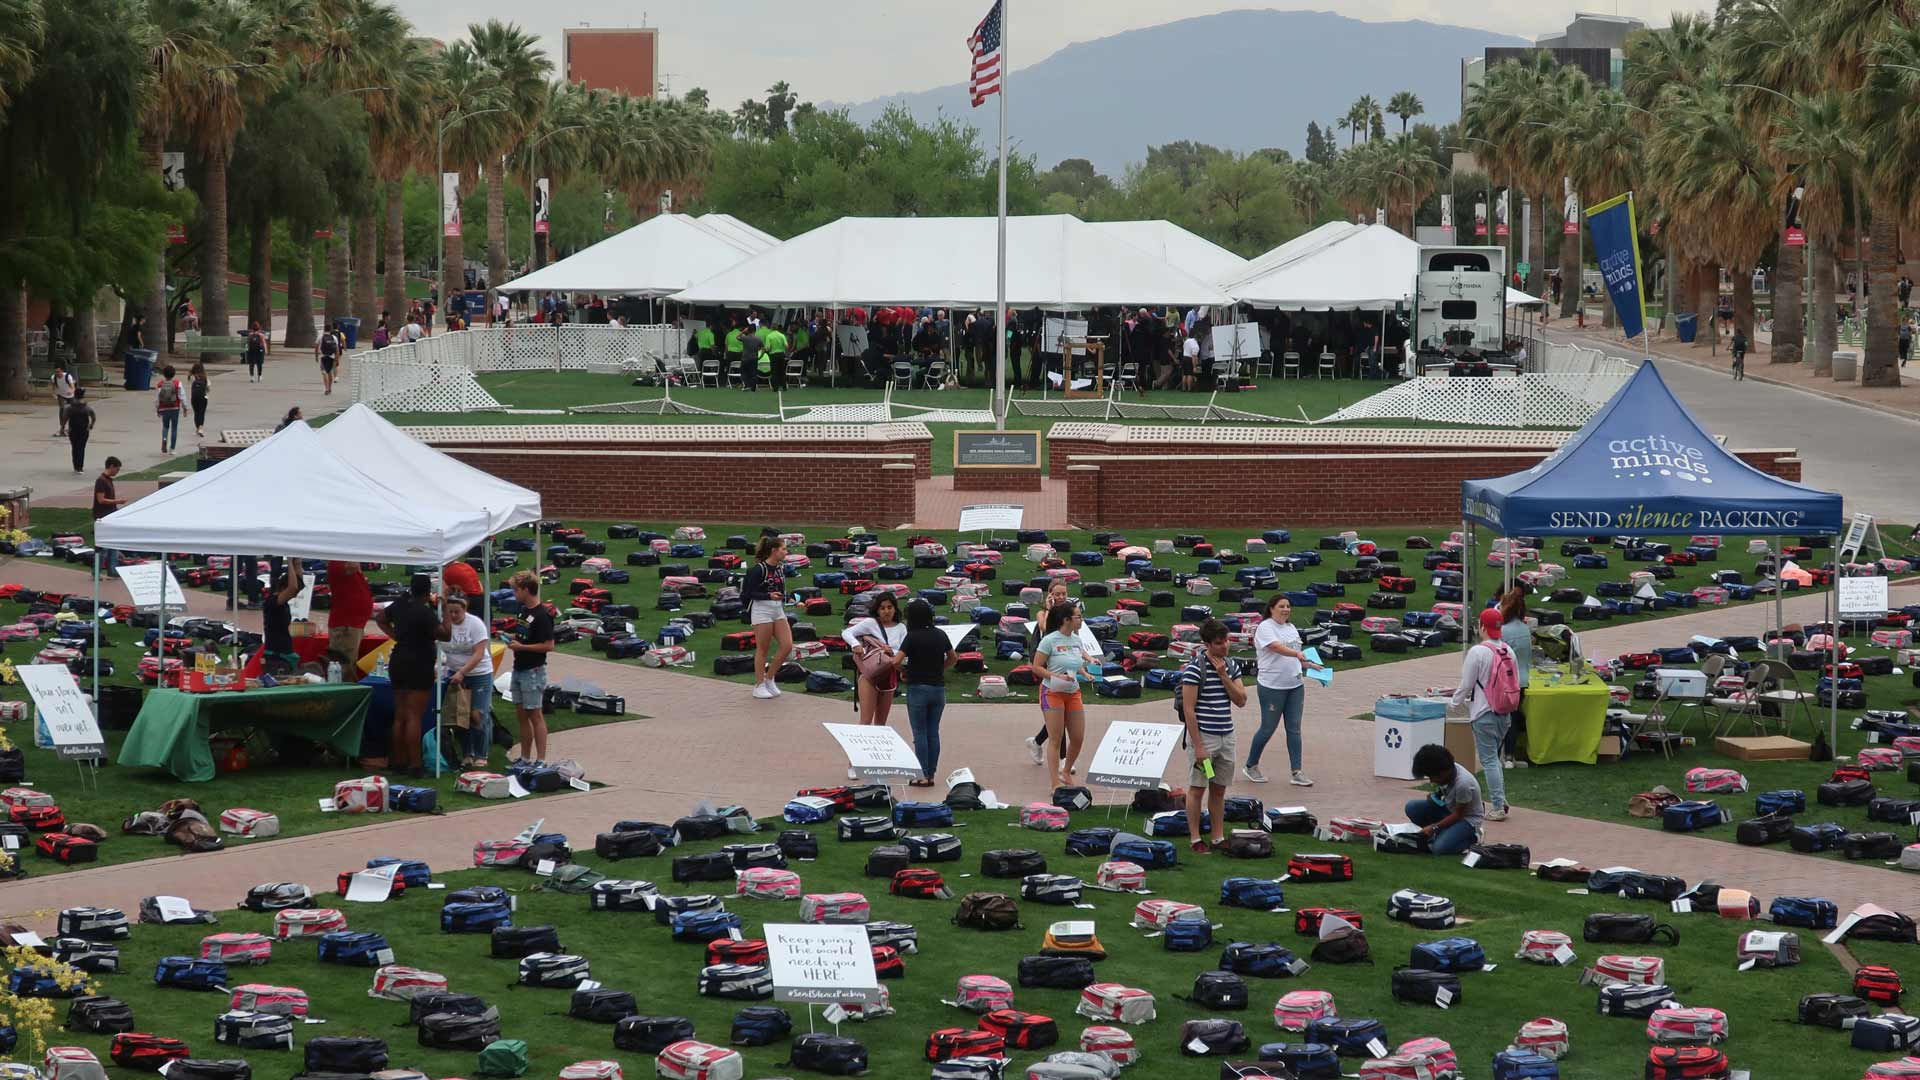 1,100 backpacks represent the number of college students who died by suicide in 2018. This event was designed to raise awareness about mental health and encourage suicide prevention.